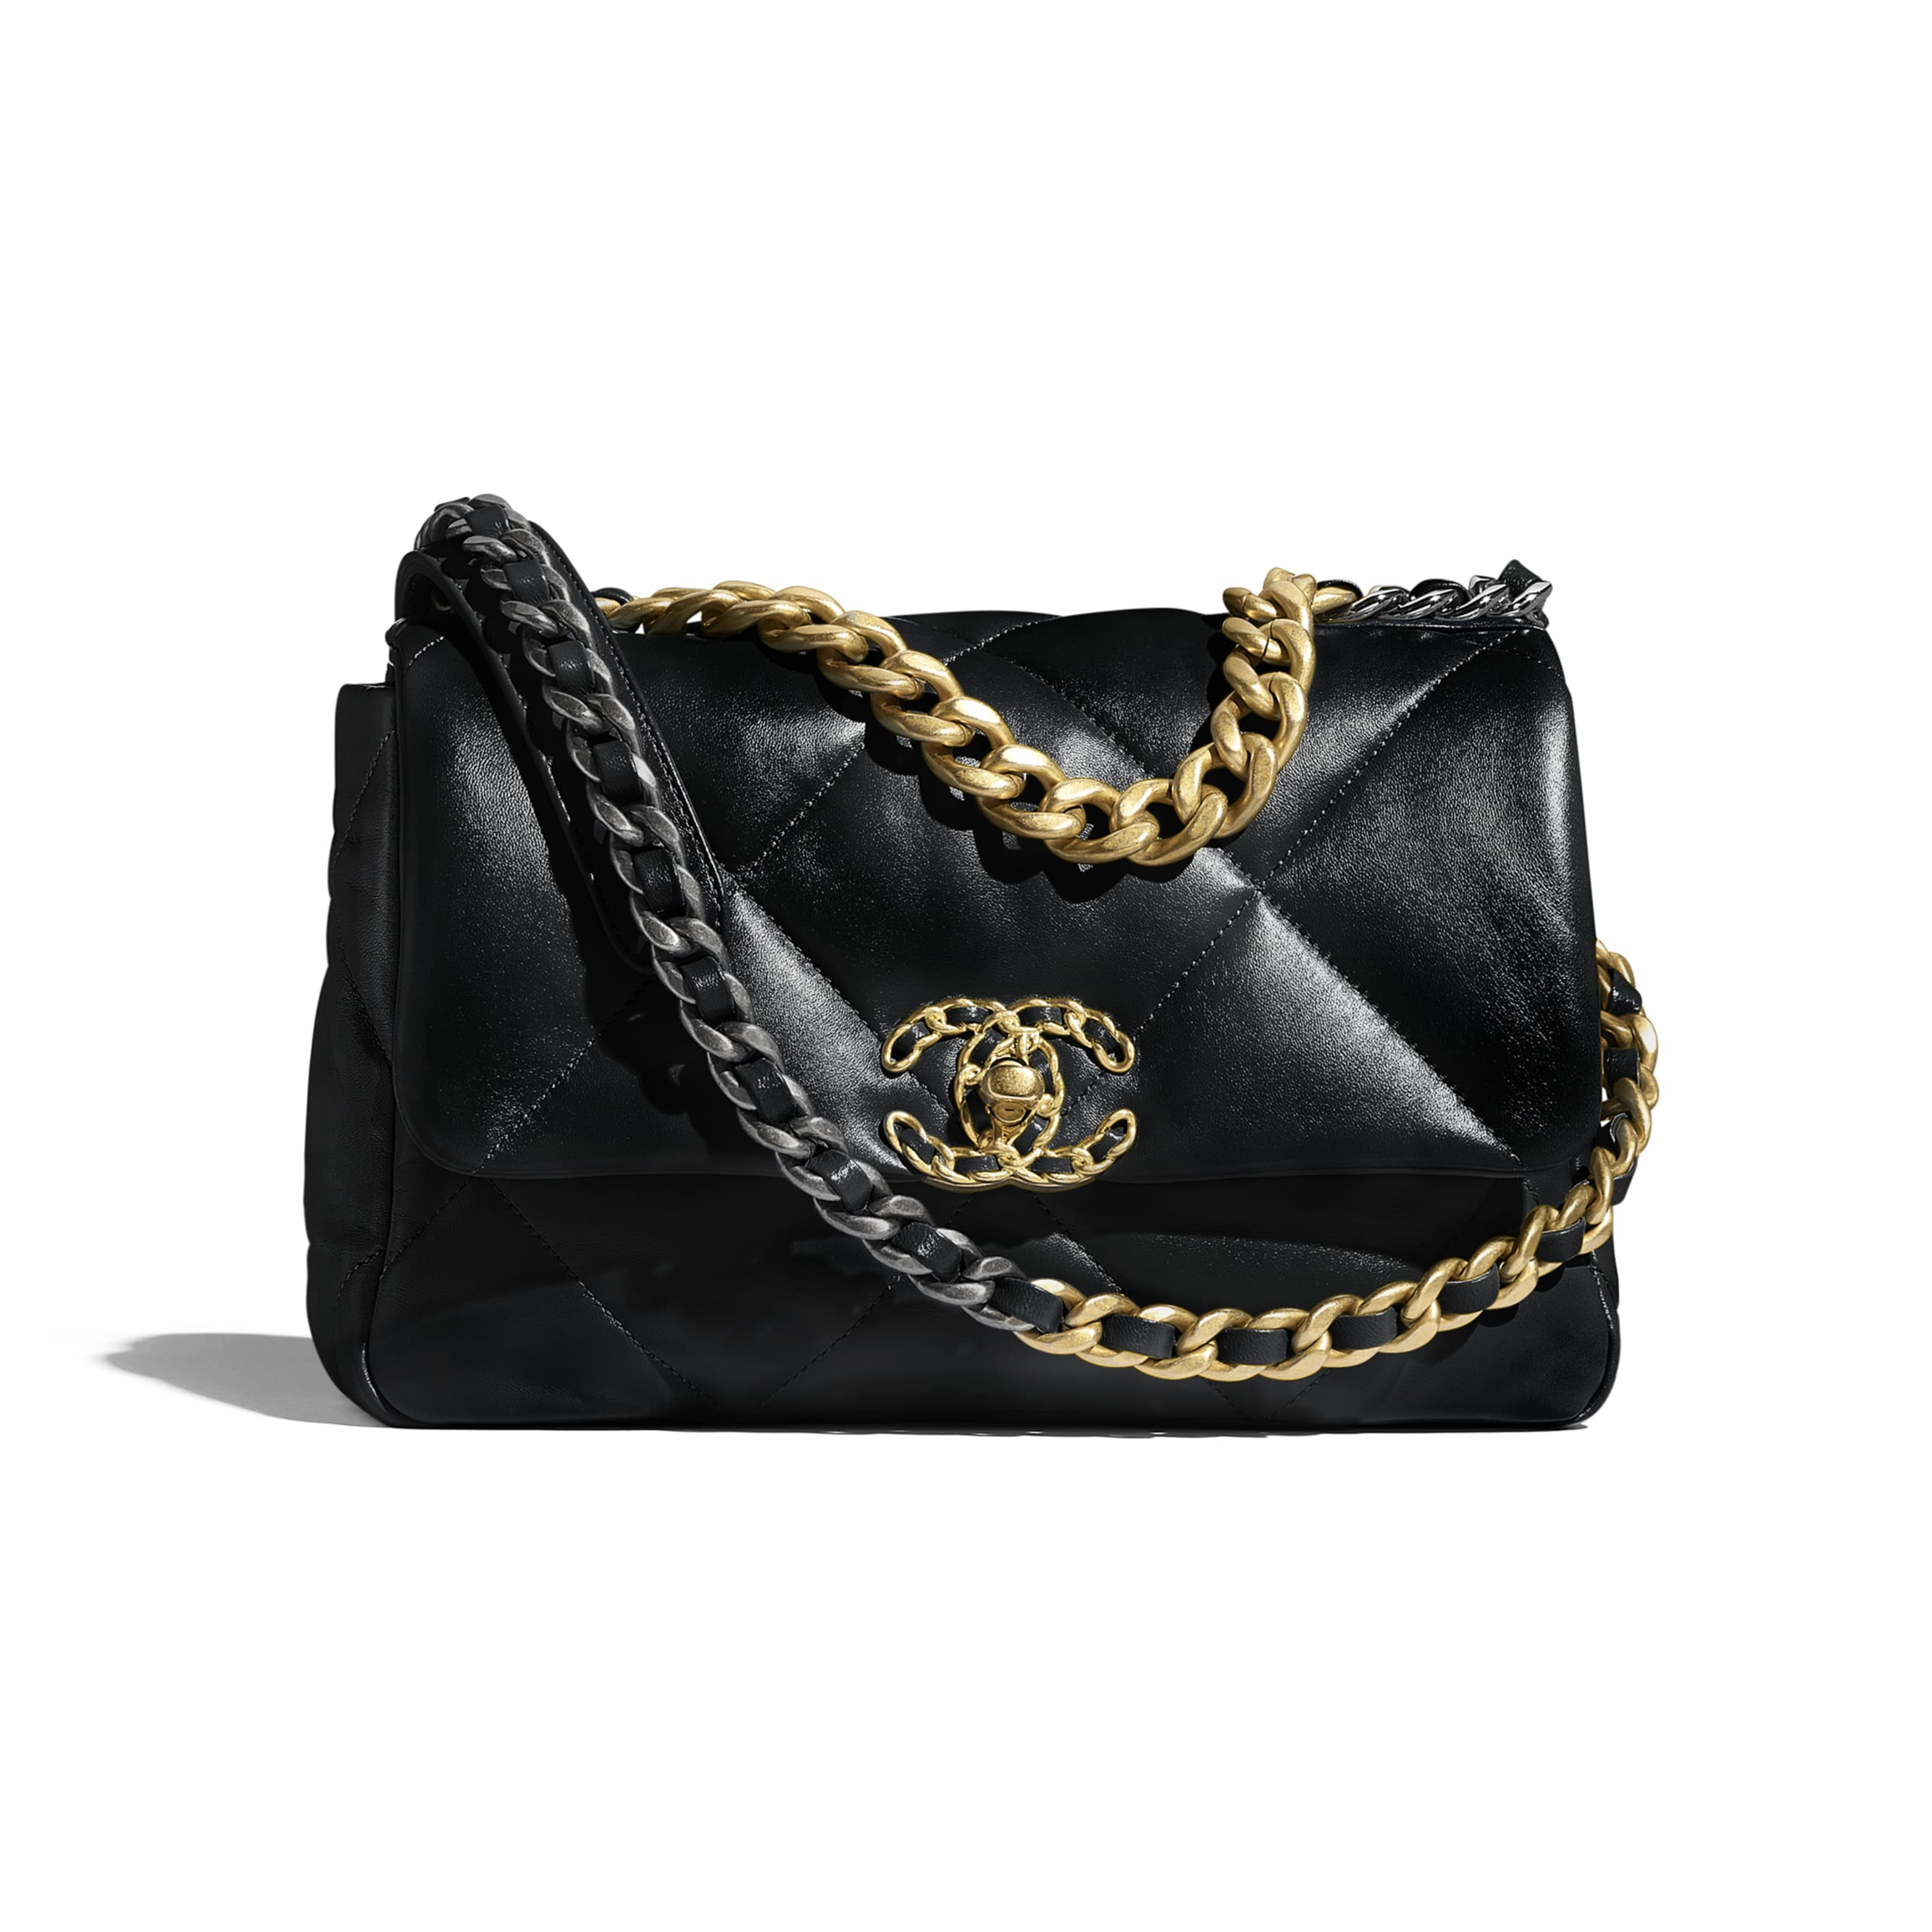 CHANEL 19 Flap Bag - Black - Lambskin, Gold-Tone, Silver-Tone & Ruthenium-Finish Metal - CHANEL - Default view - see standard sized version